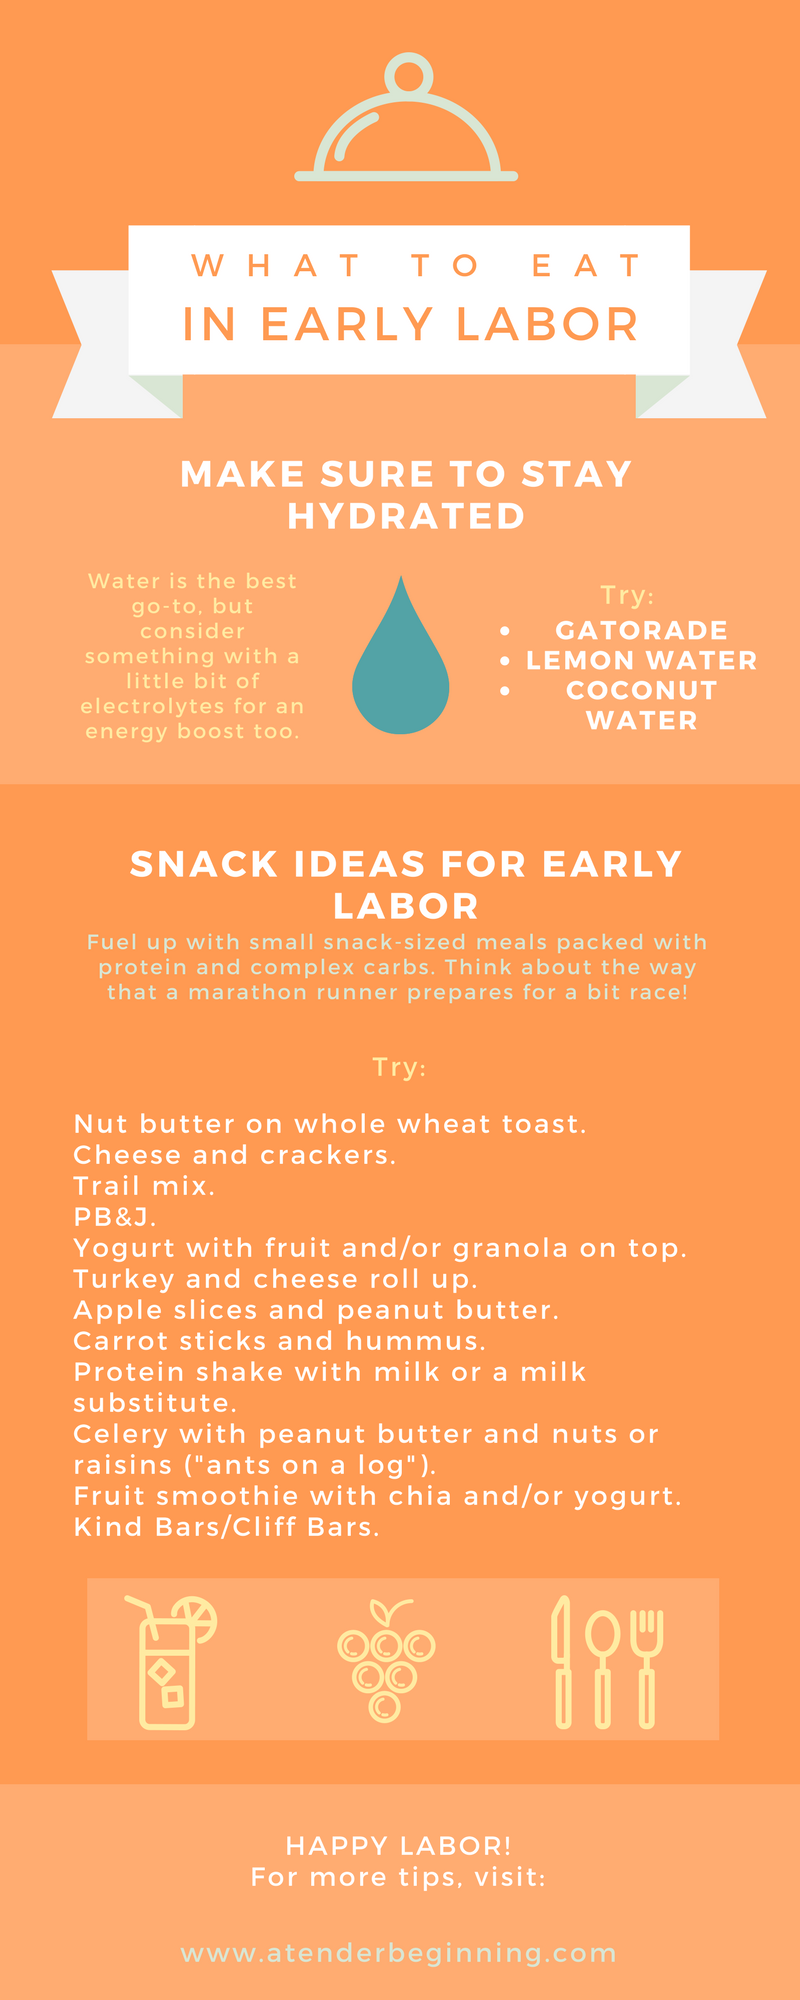 What to Eat in Early Labor